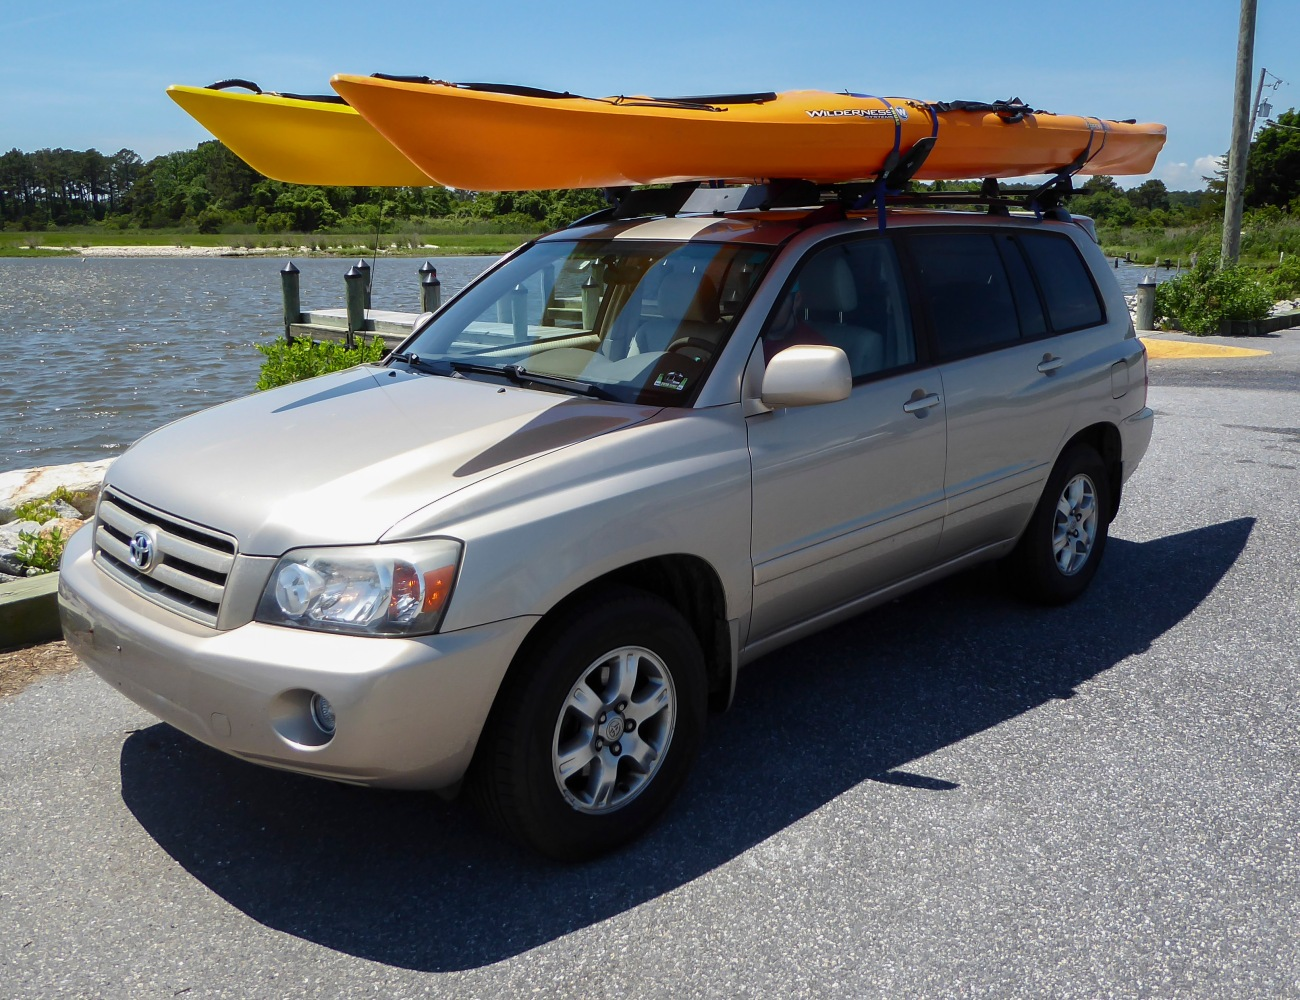 20180526_133754_Kayaks strapped to the top of the Highlander